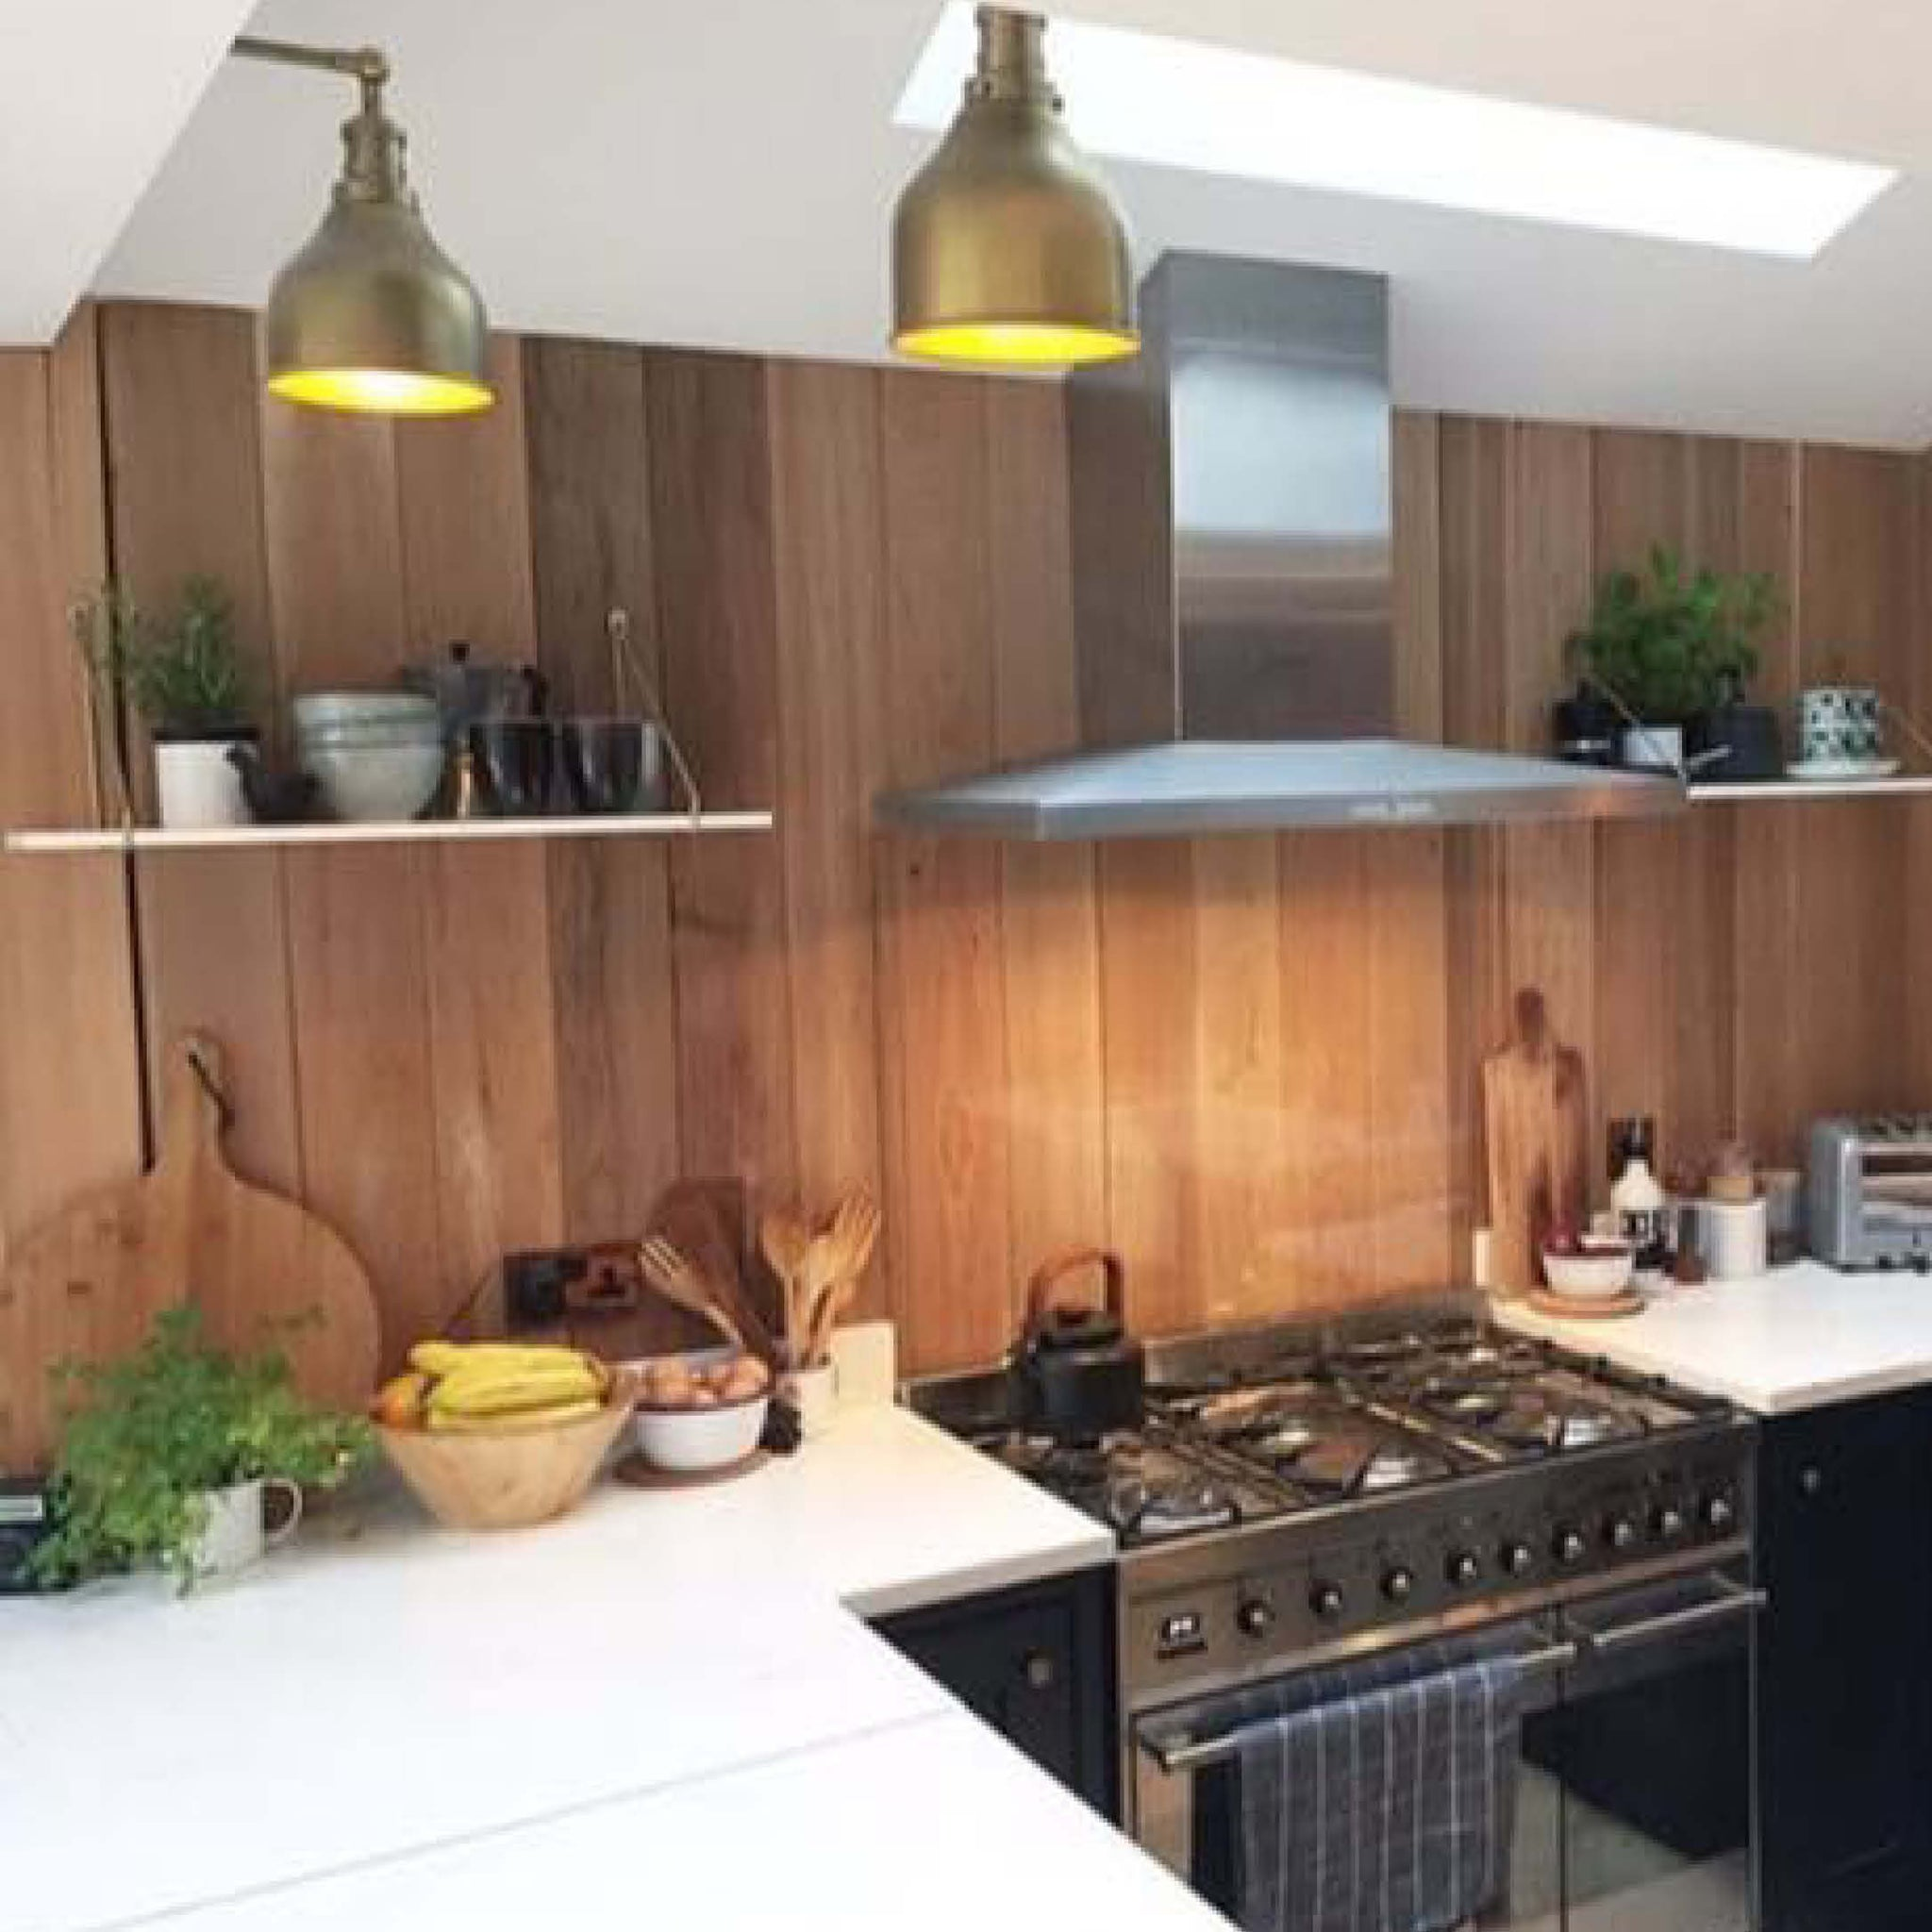 Brass industrial lights in kitchen